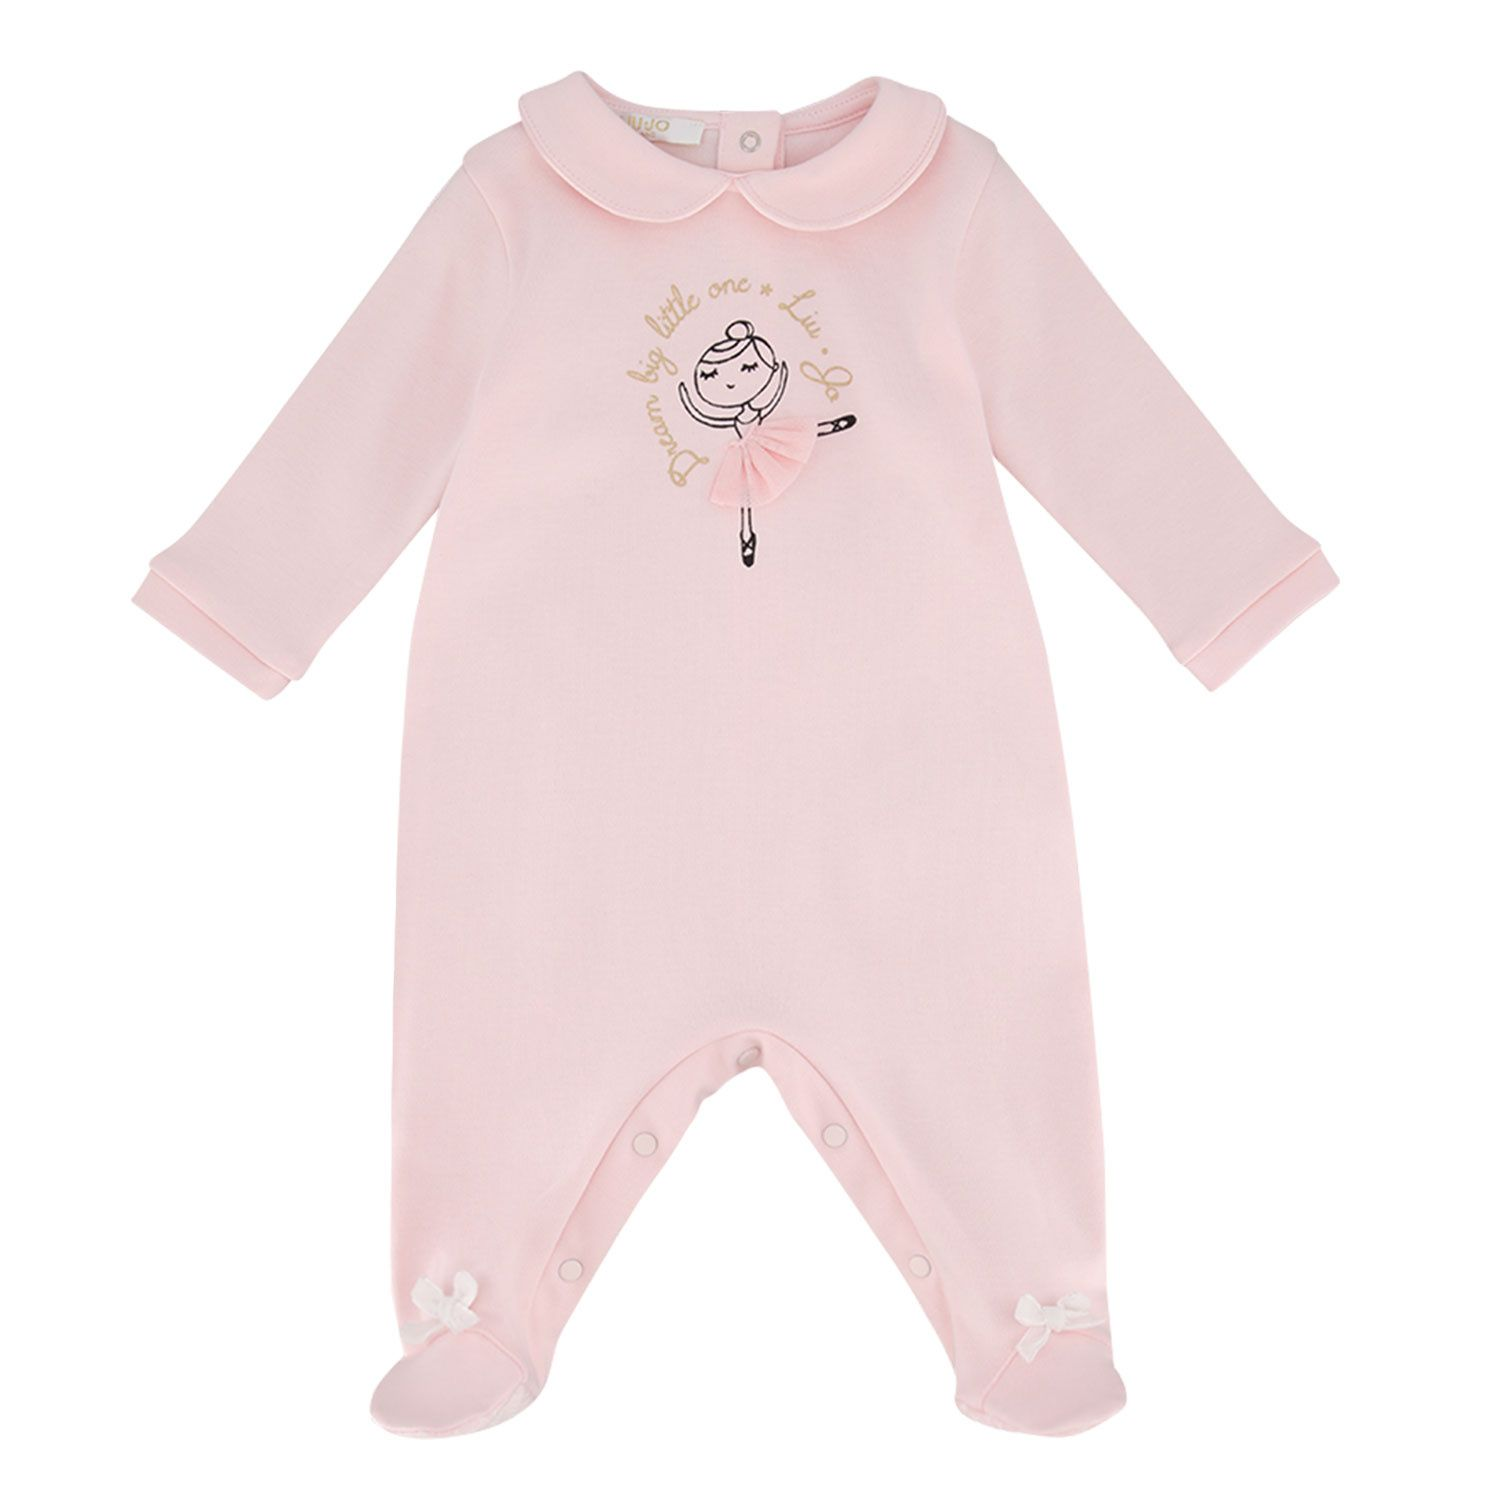 Picture of Liu Jo HF0010 baby playsuit light pink